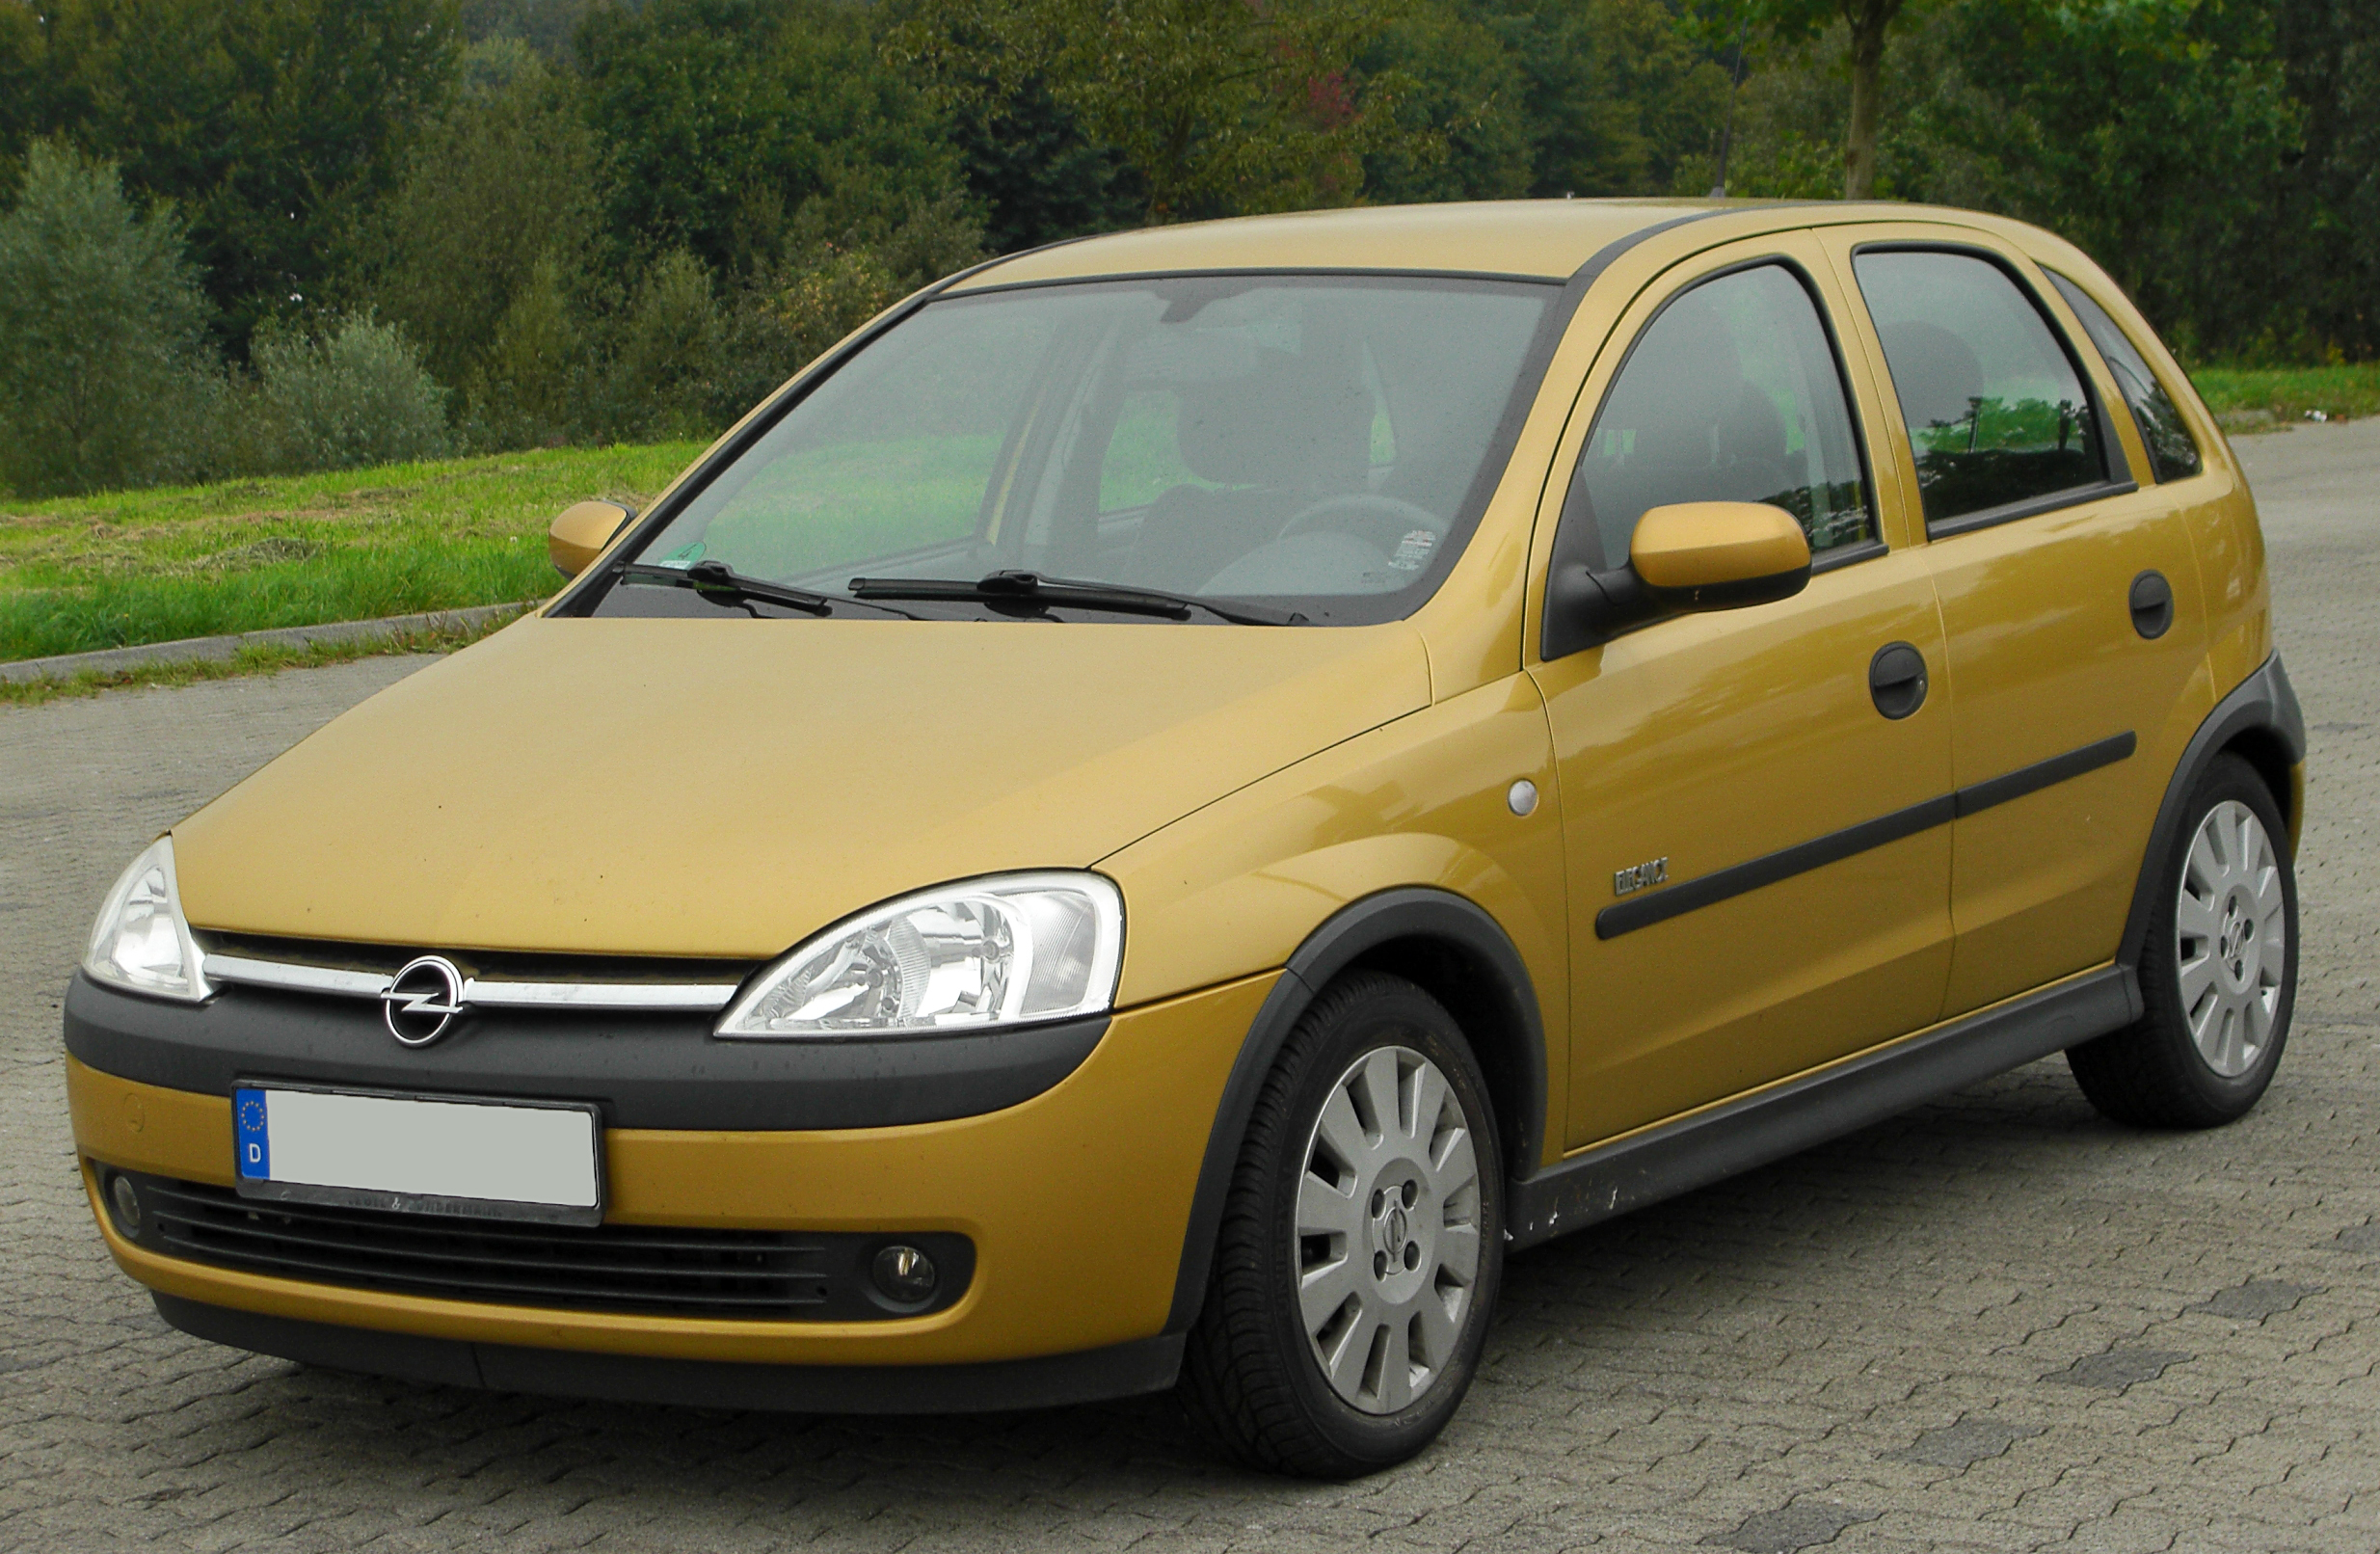 Opel Corsa A 1982 - 1993 Hatchback 3 door #7